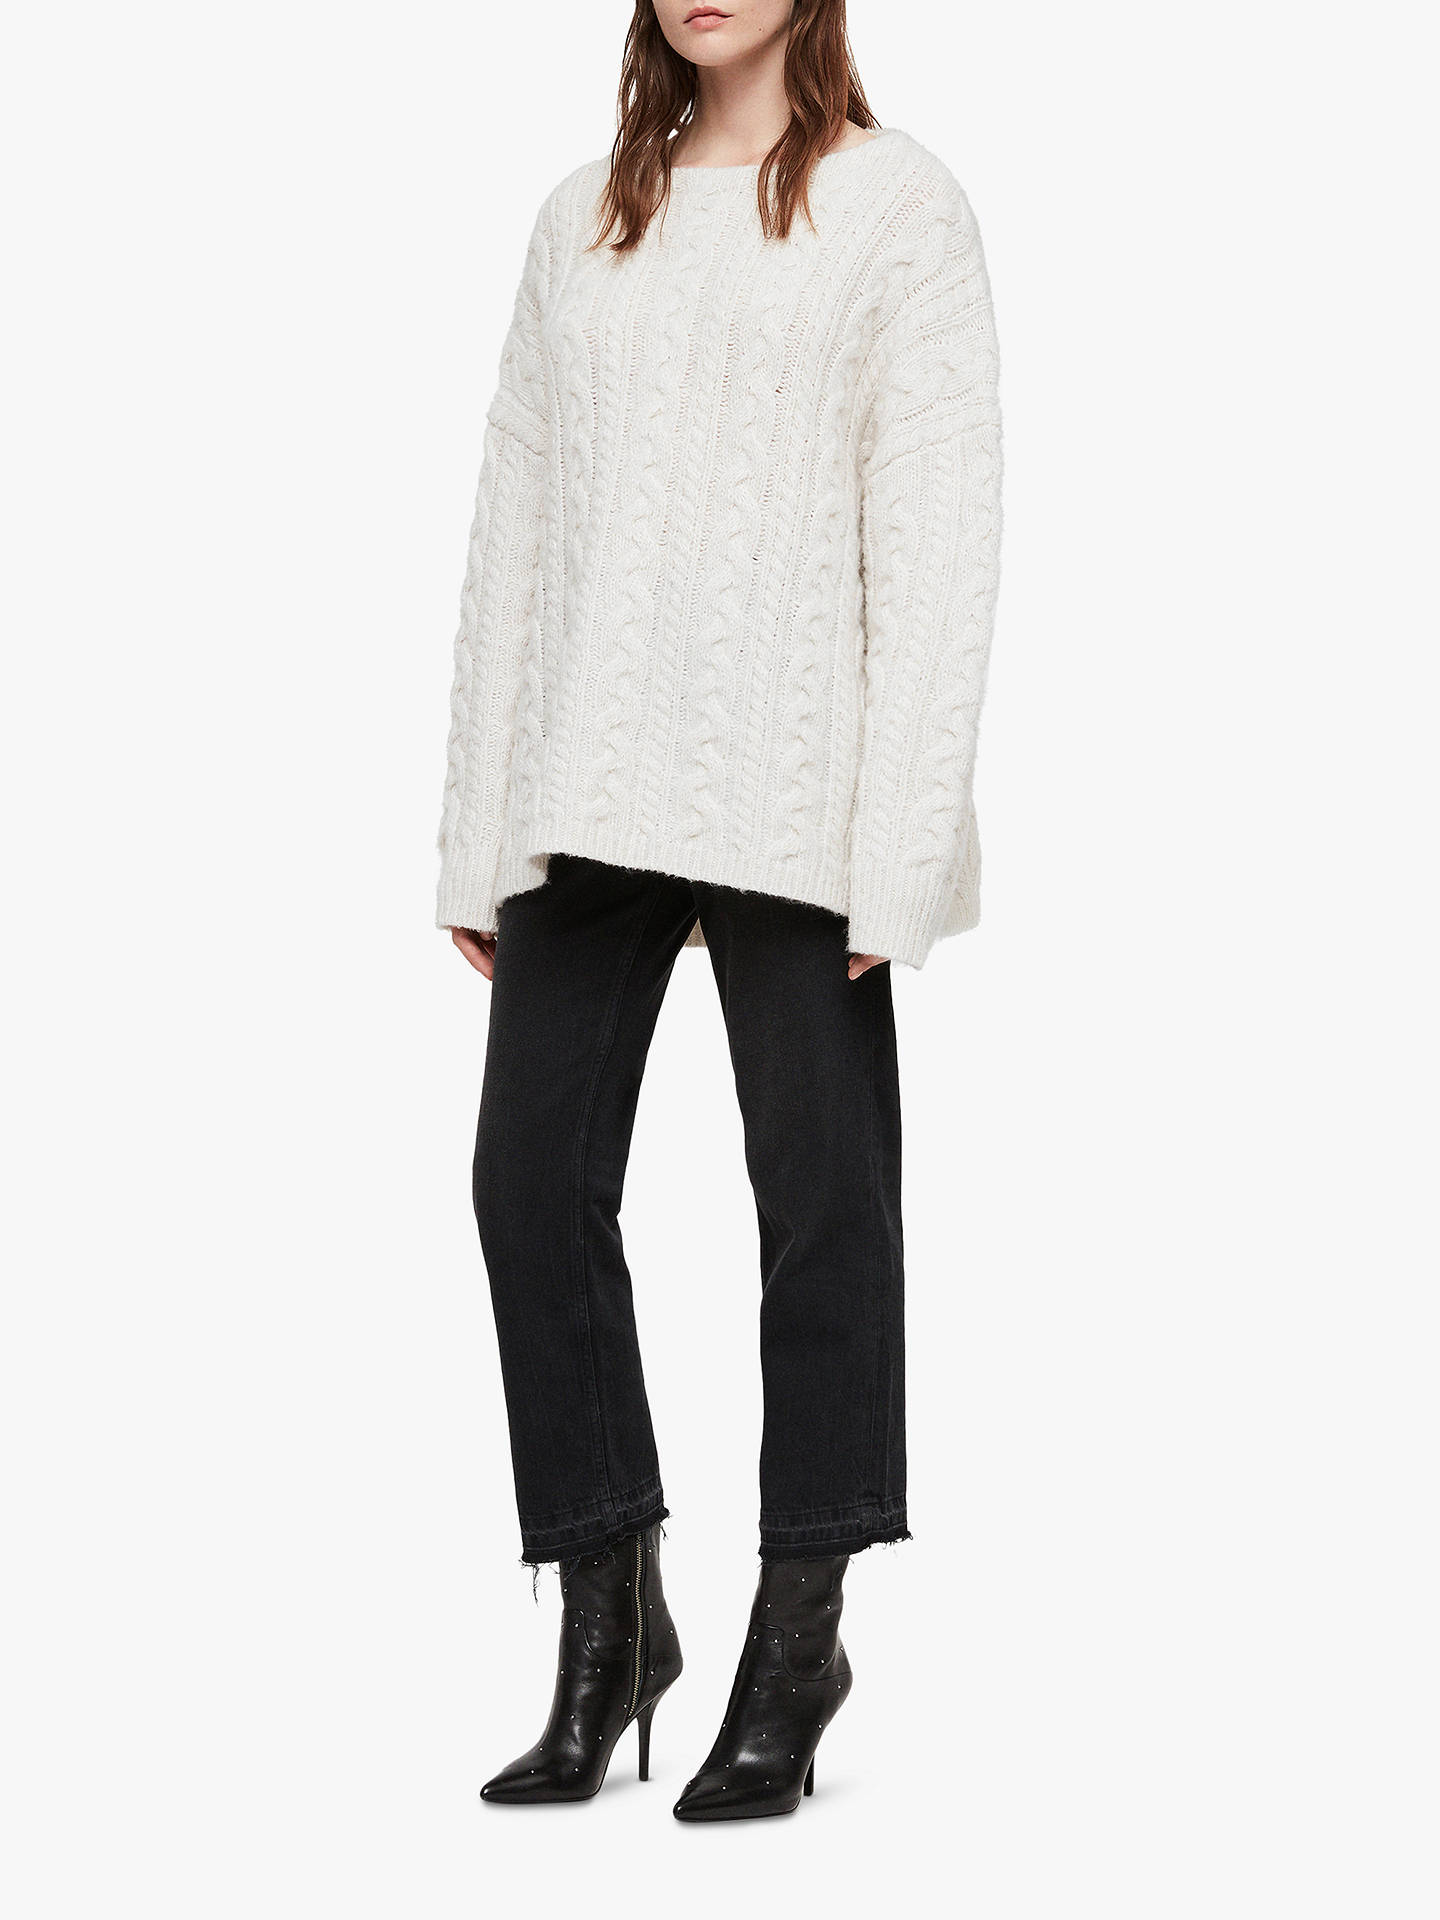 BuyAllSaints Cable Knit Jumper, Sodium White, XS Online at johnlewis.com